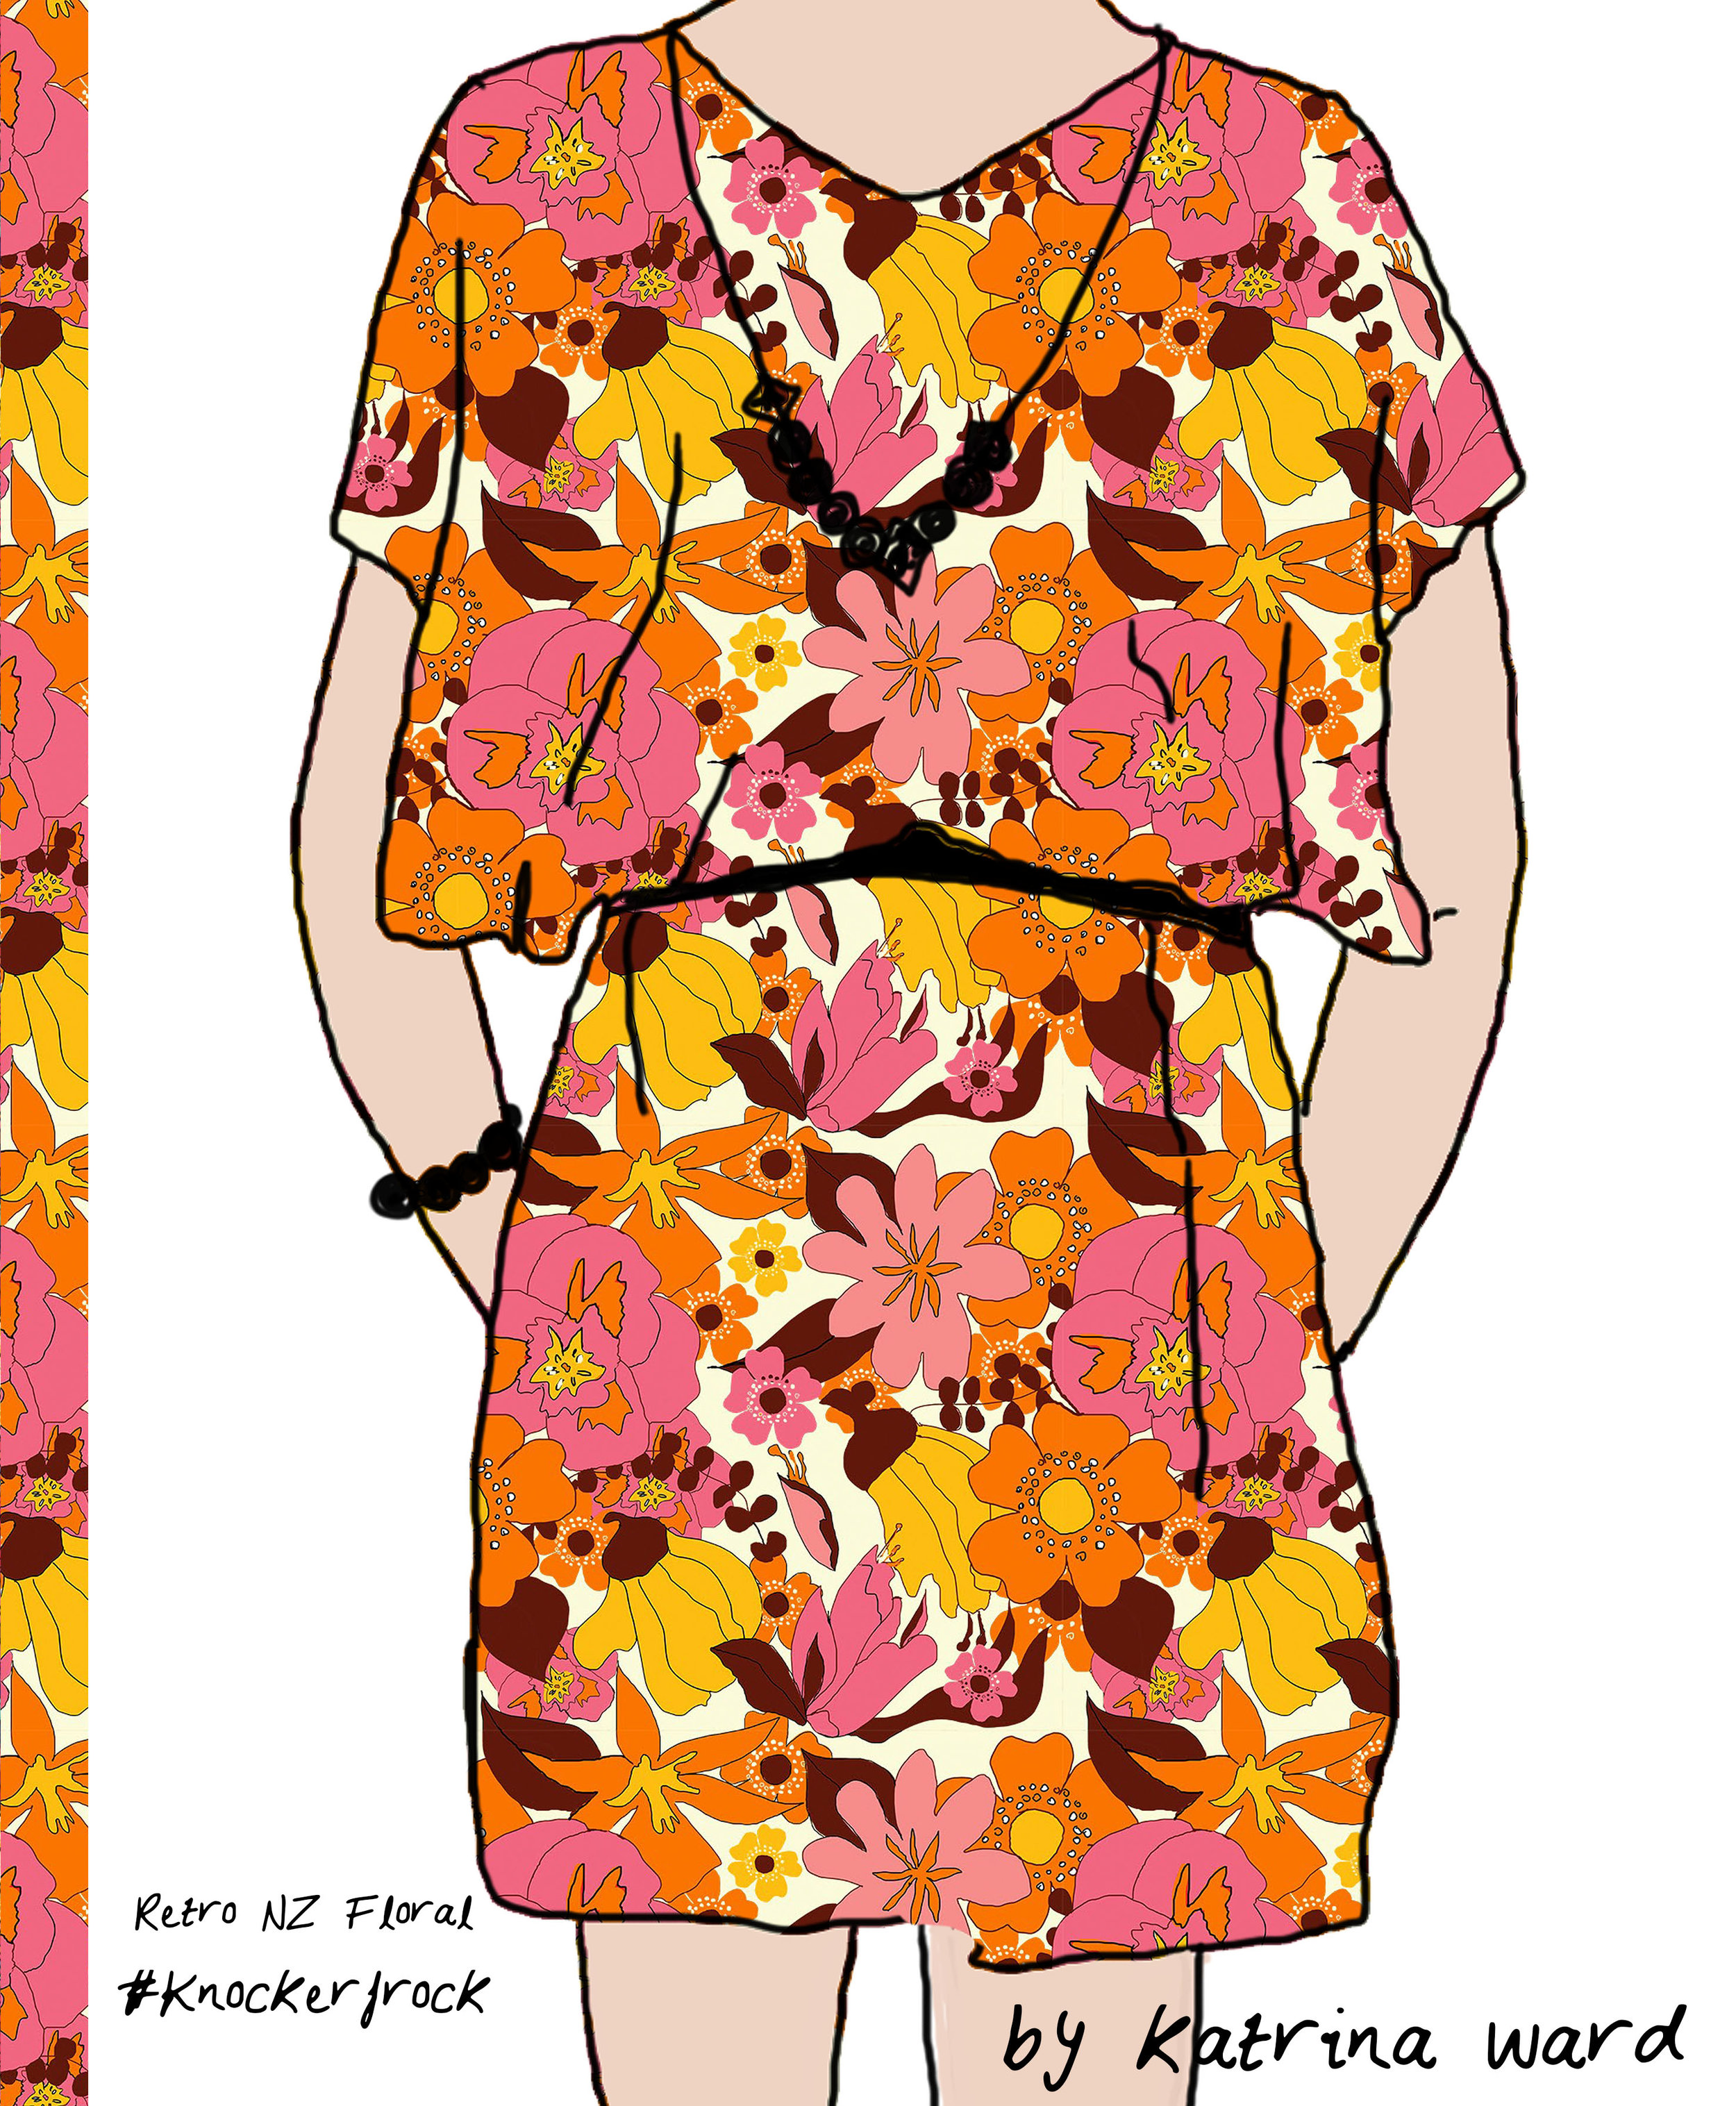 retro nz floral knockerfrock.jpg